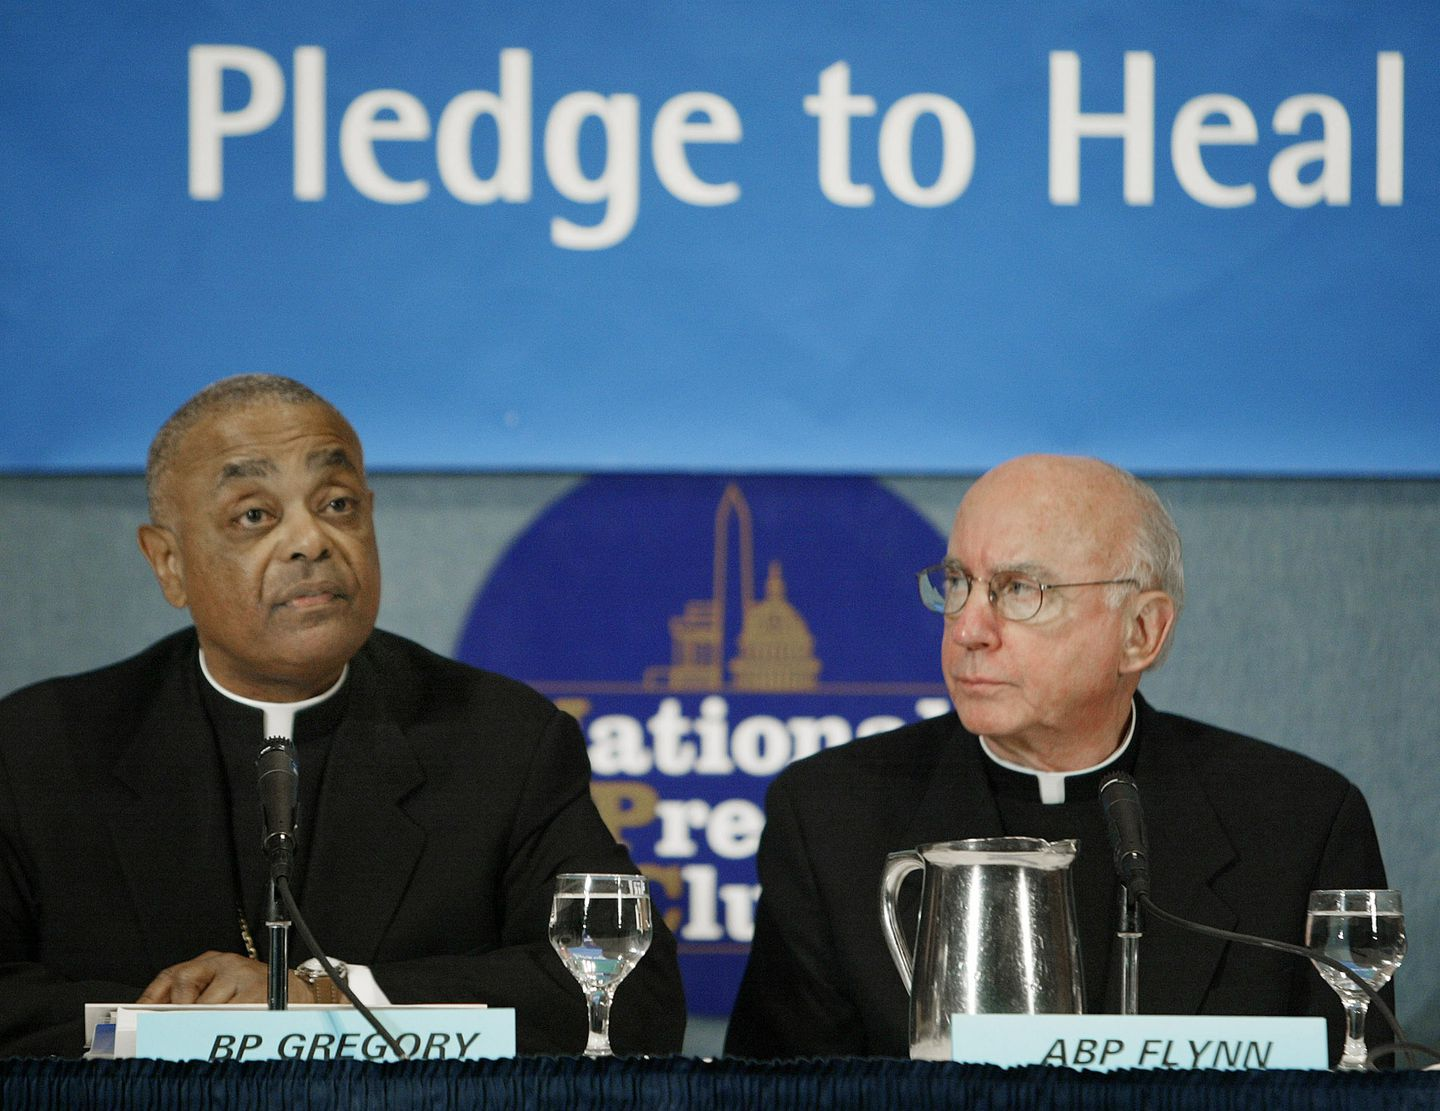 Archbishop Harry Flynn of Minneapolis-St. Paul (shown with Bishop Wilton Gregory at left in 2004) effectively handled the nation's first clergy sex abuse scandal. But he, too, would eventually be caught in the undertow.